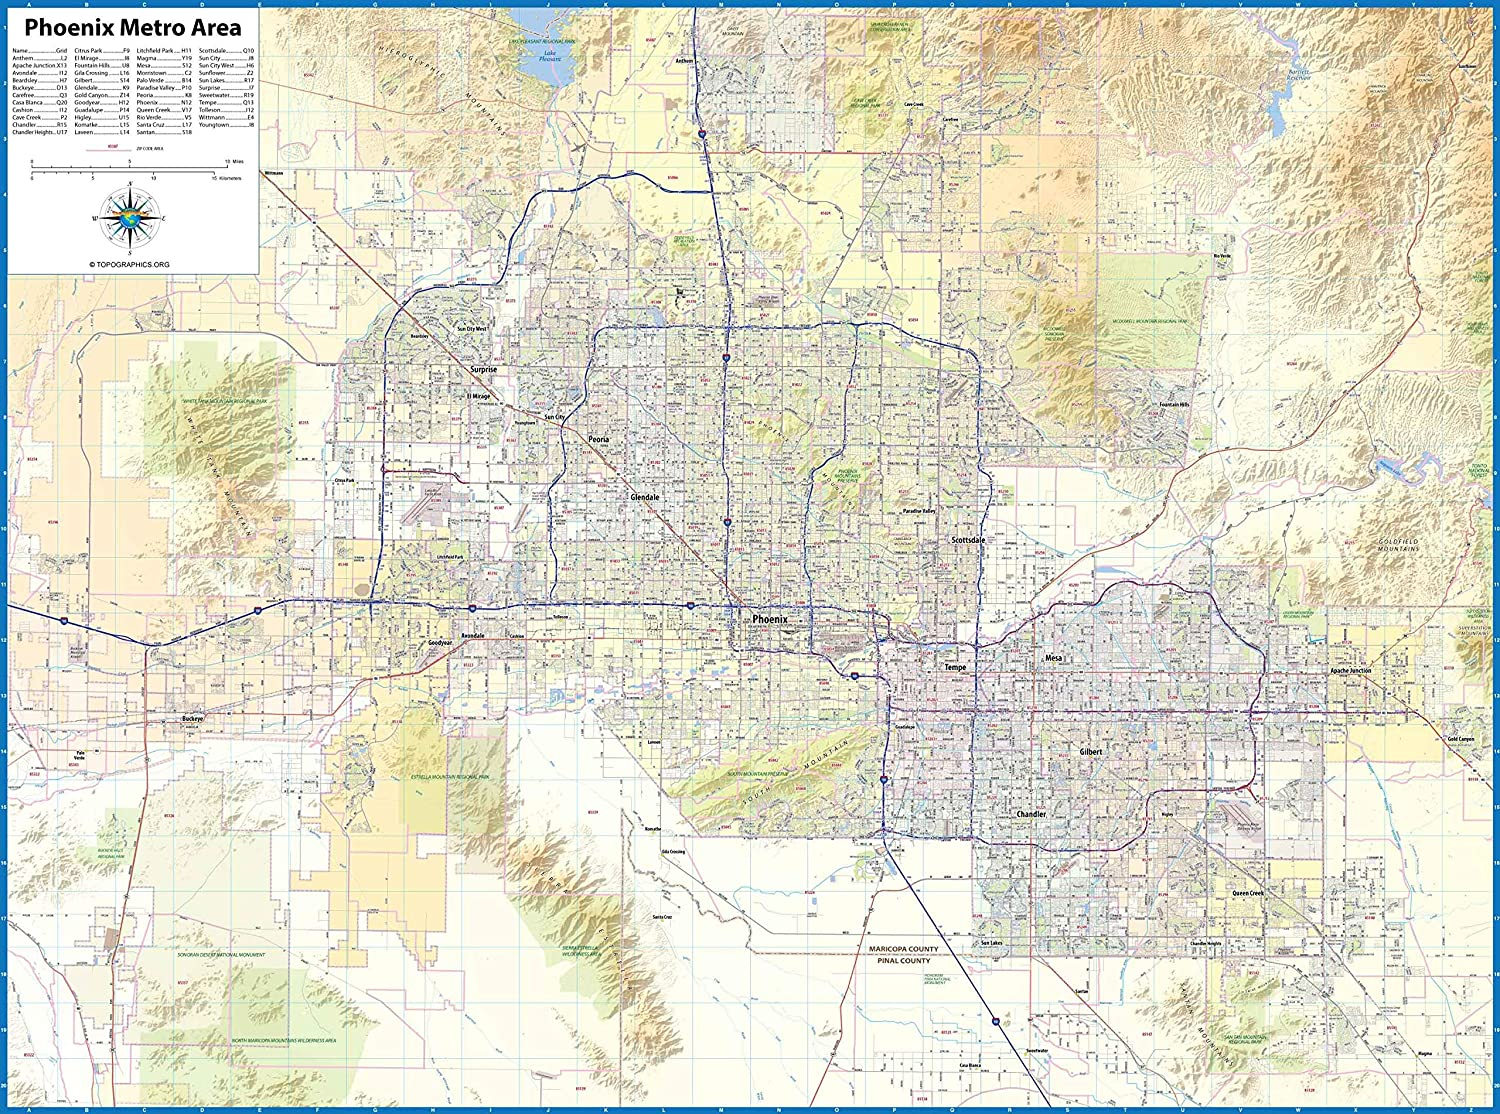 Amazon.com : Phoenix Metro Area Laminated Wall Map (56